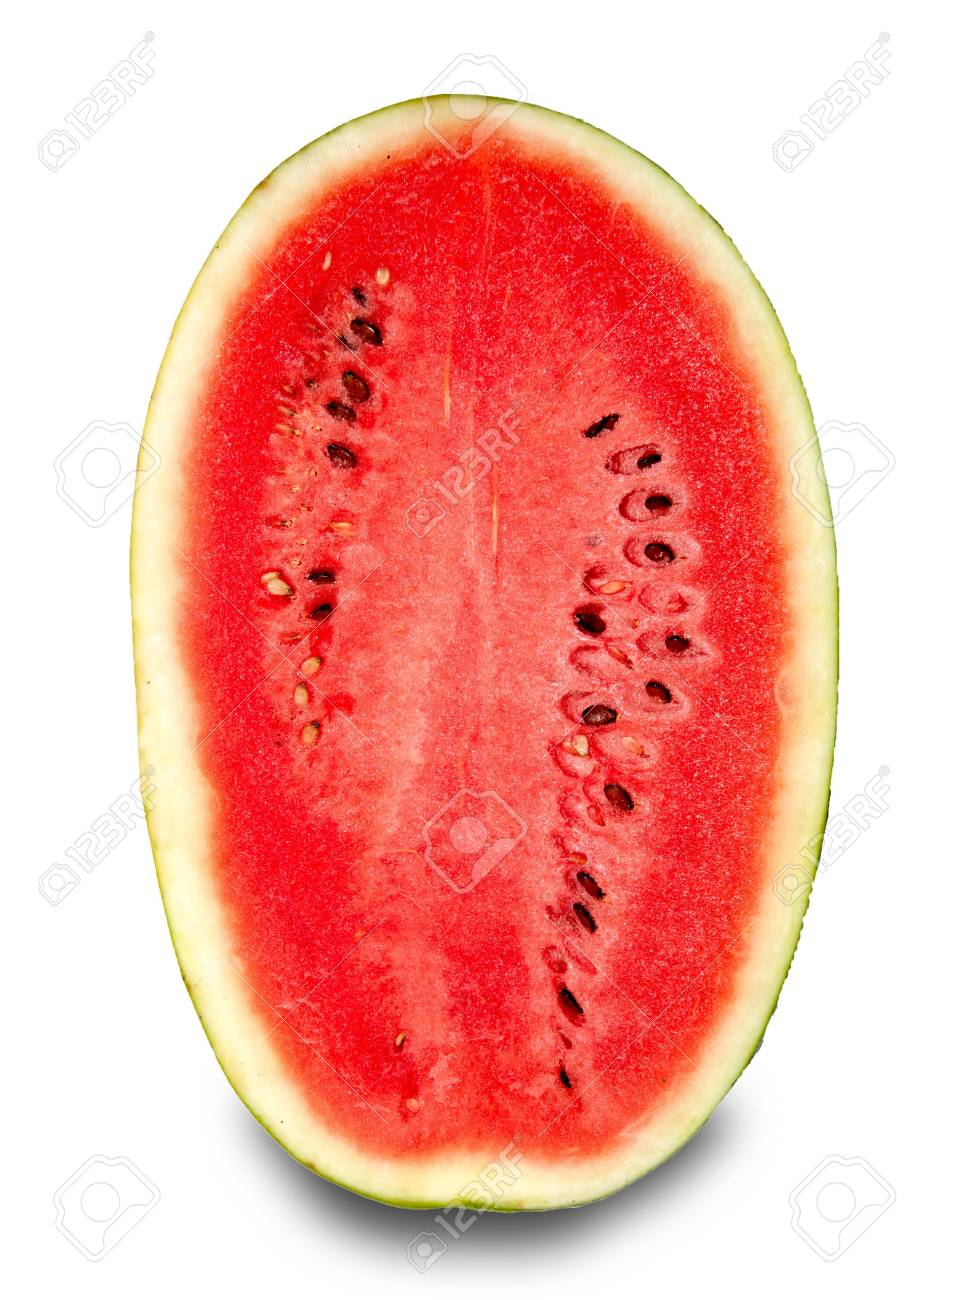 The Fresh water melon isolated on white background Stock Photo - 11927741